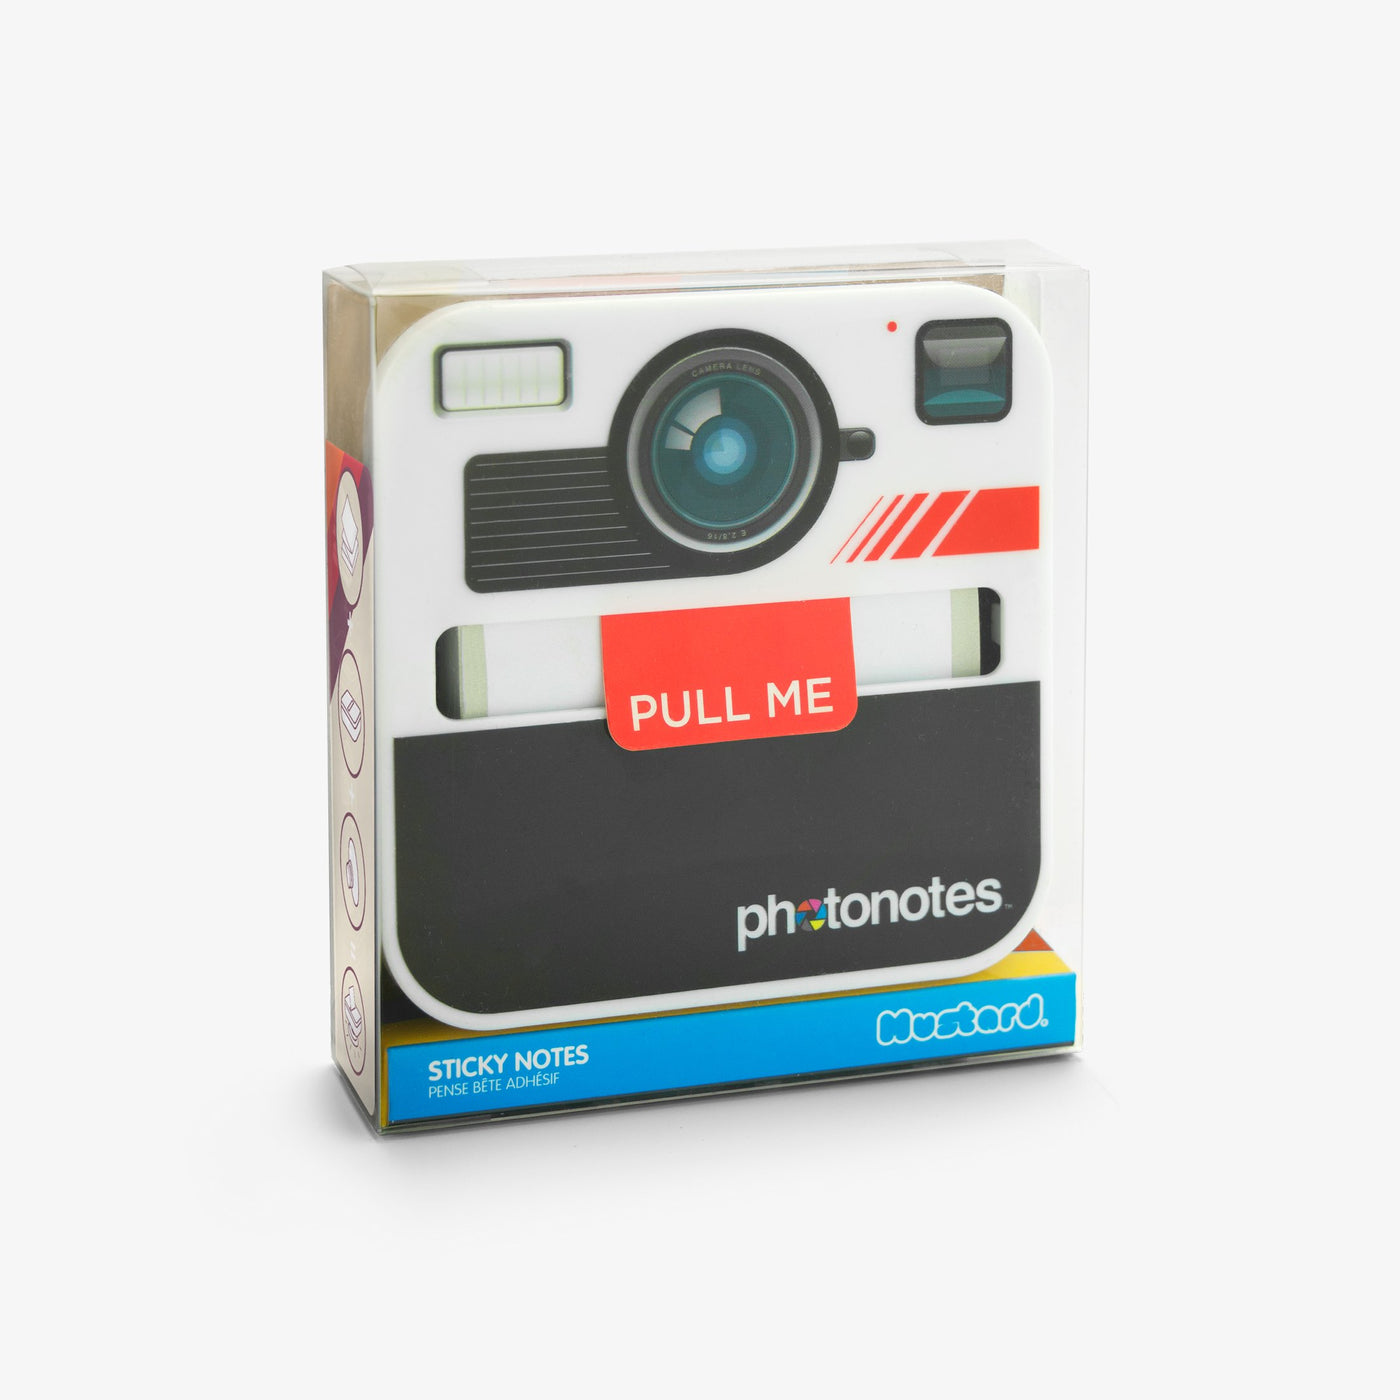 Sticky Notes Dispenser Photonotes